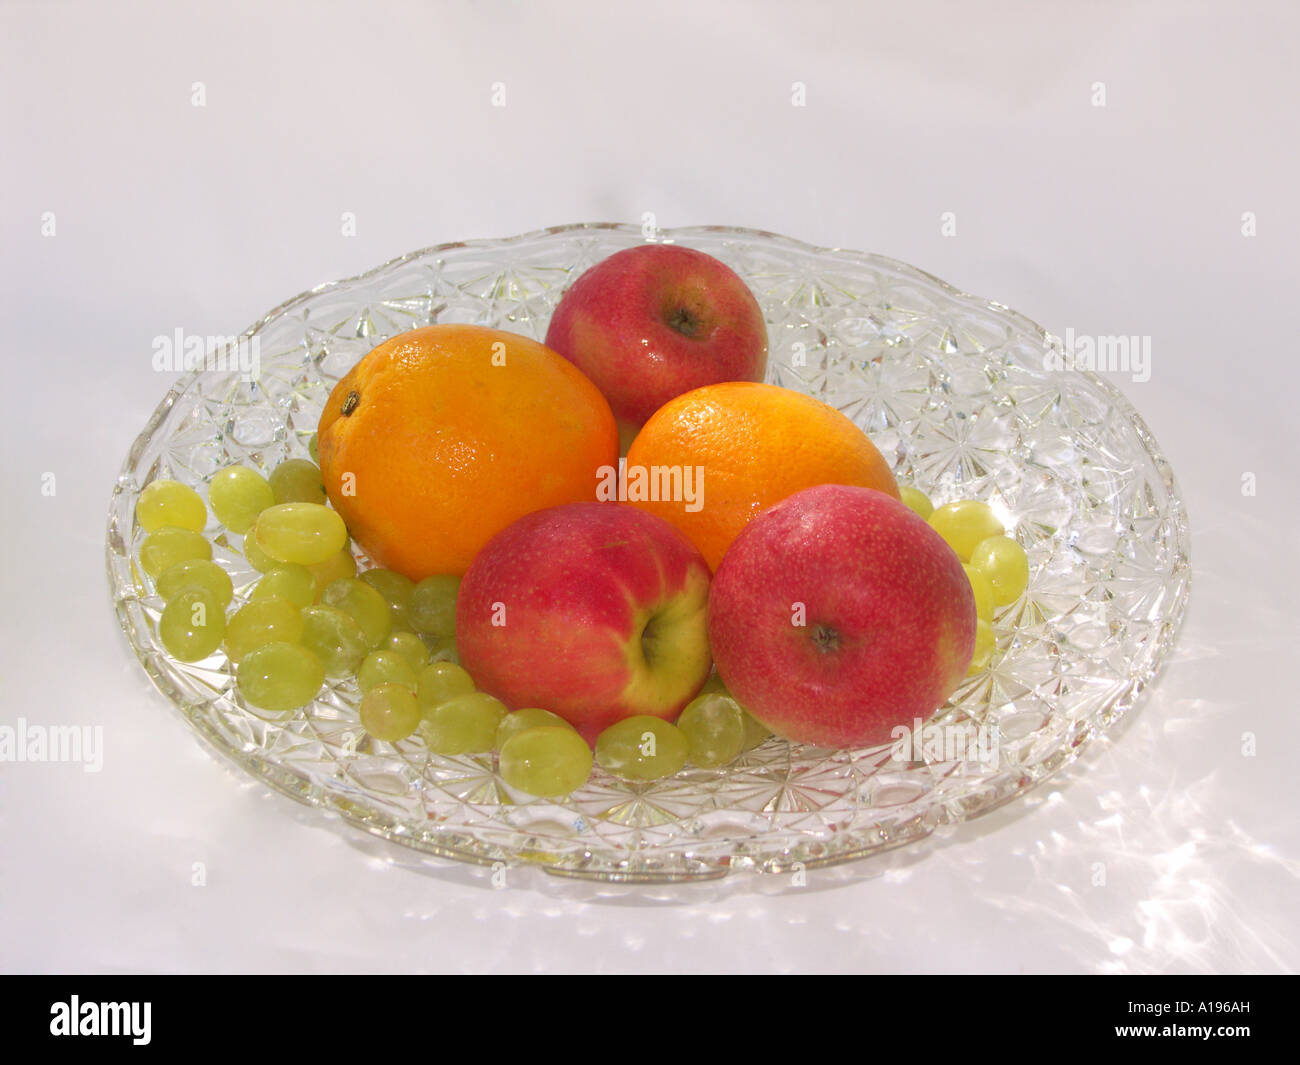 Crystal glass bowl plate with selection of fresh fruit, apples, oranges, and grapes, on a plain white background - Stock Image